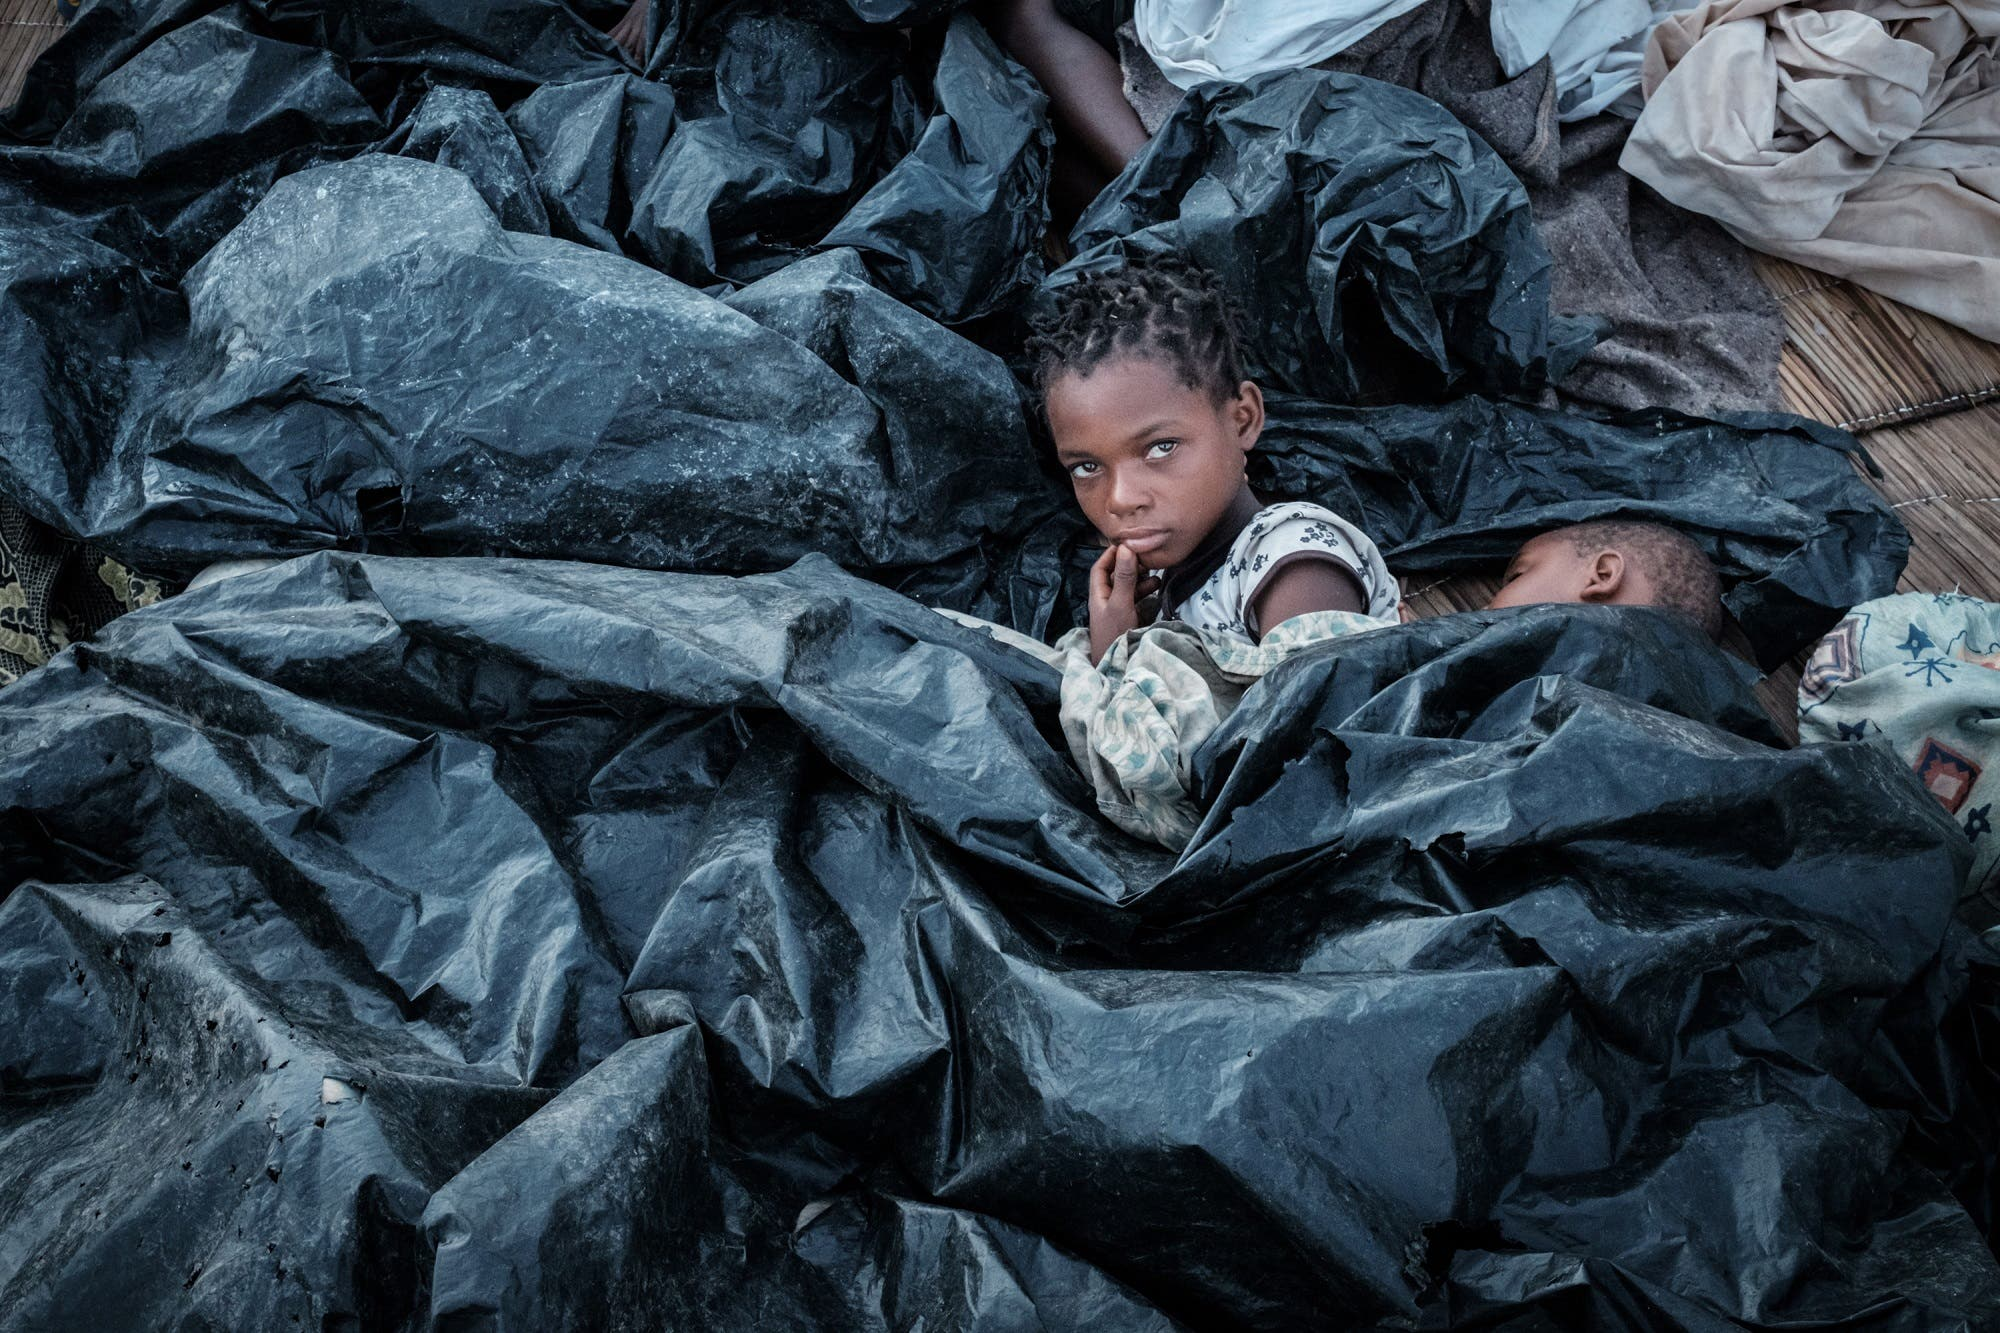 Enia Joaquin Luis, 11, wakes up under plastic sheets to protect herself from rain as she stays in shelter at the stands of Ring ground in Buzi, Mozambique, on March 23, 2019. (AFP)